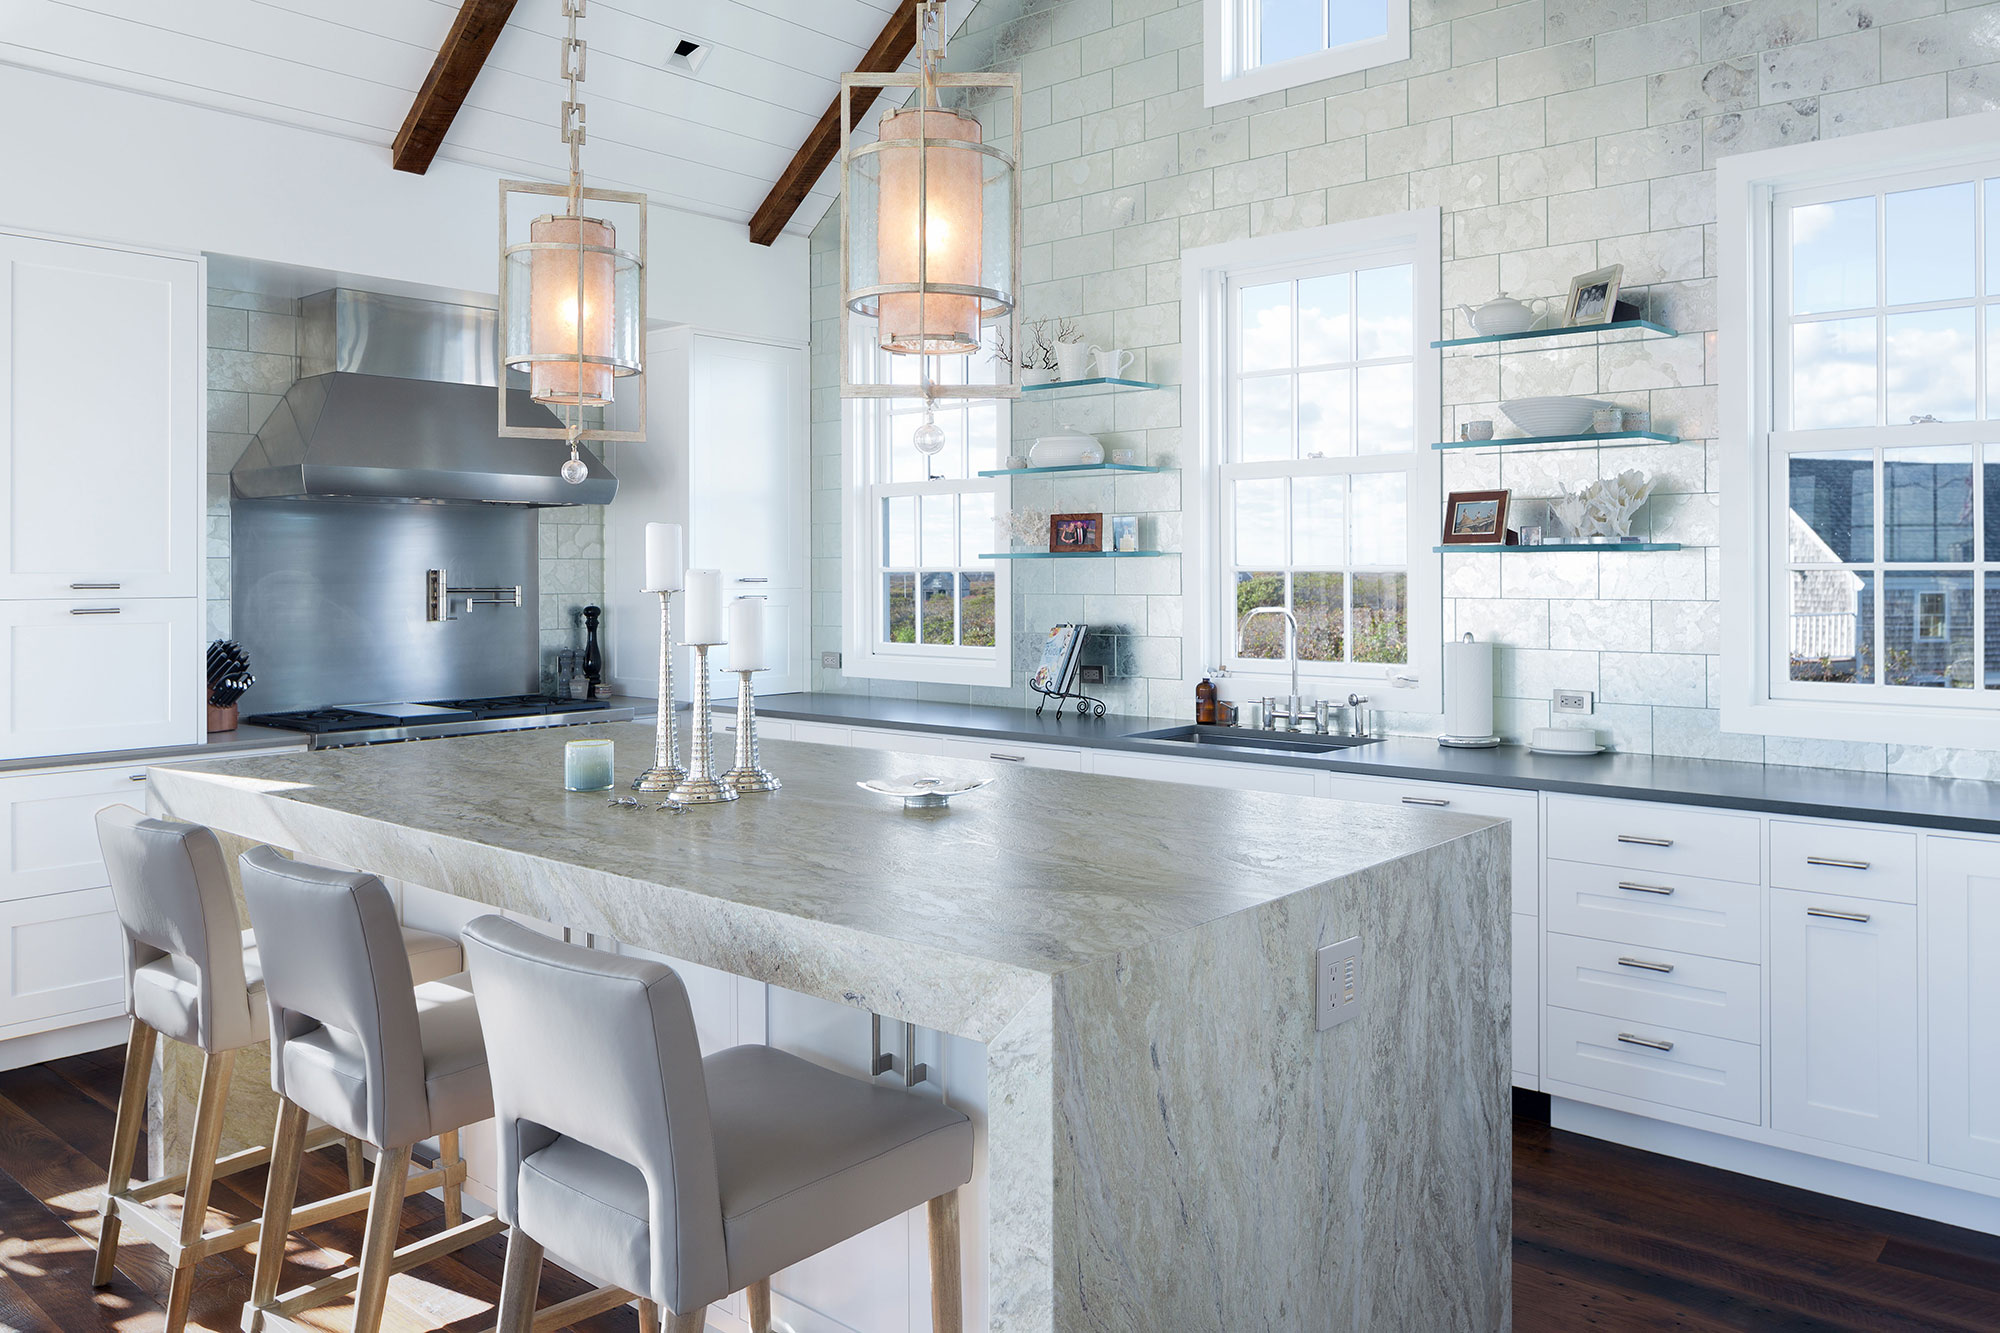 Nantucket Kitchens Designed by Chip Webster Architecture on Nantucket